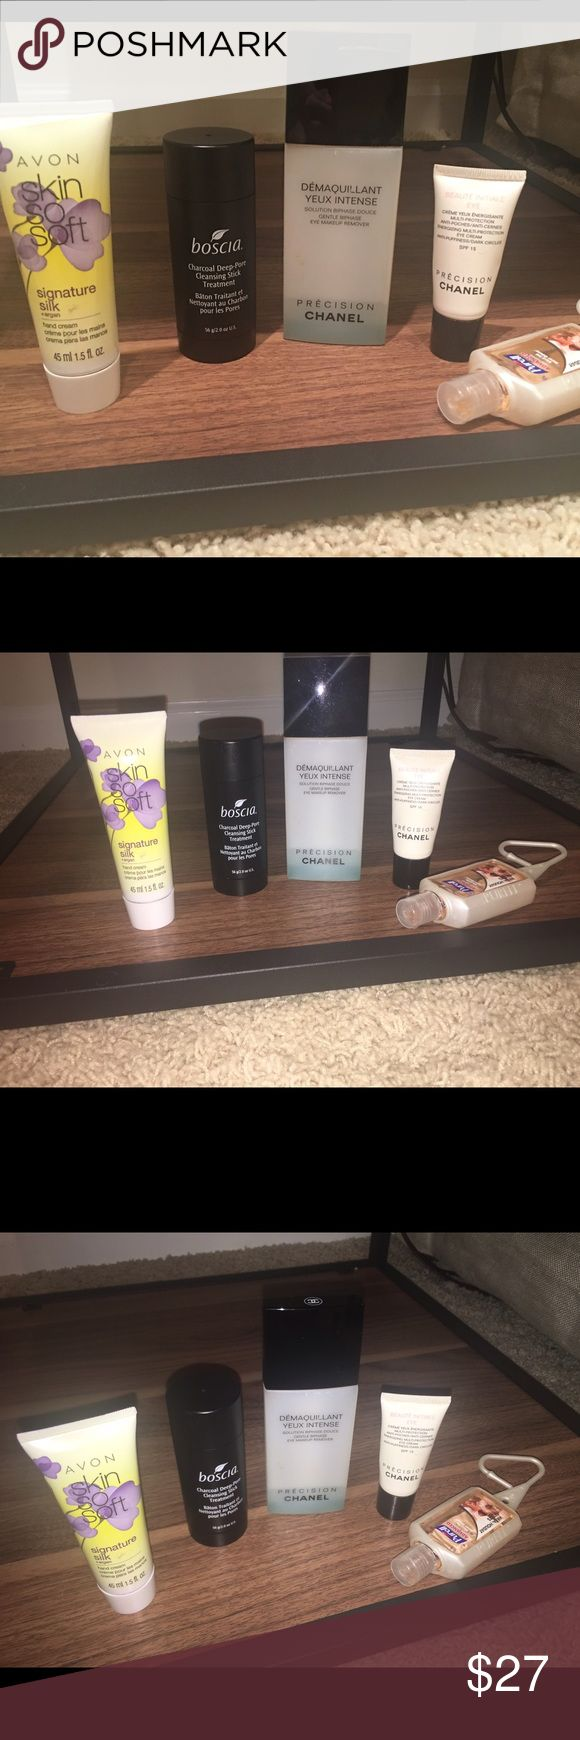 Chanel eye cream & remover, Boscia, Avon & More 5 piece beauty package! The Chanel MakeUp remover is obviously almost empty but the eye cream is about 1/2+ full, Boscia charcoal deep pore stick 1/4 left & the Avon hand cream & Purell travel hand sanitizer are NEW. Chanel Makeup